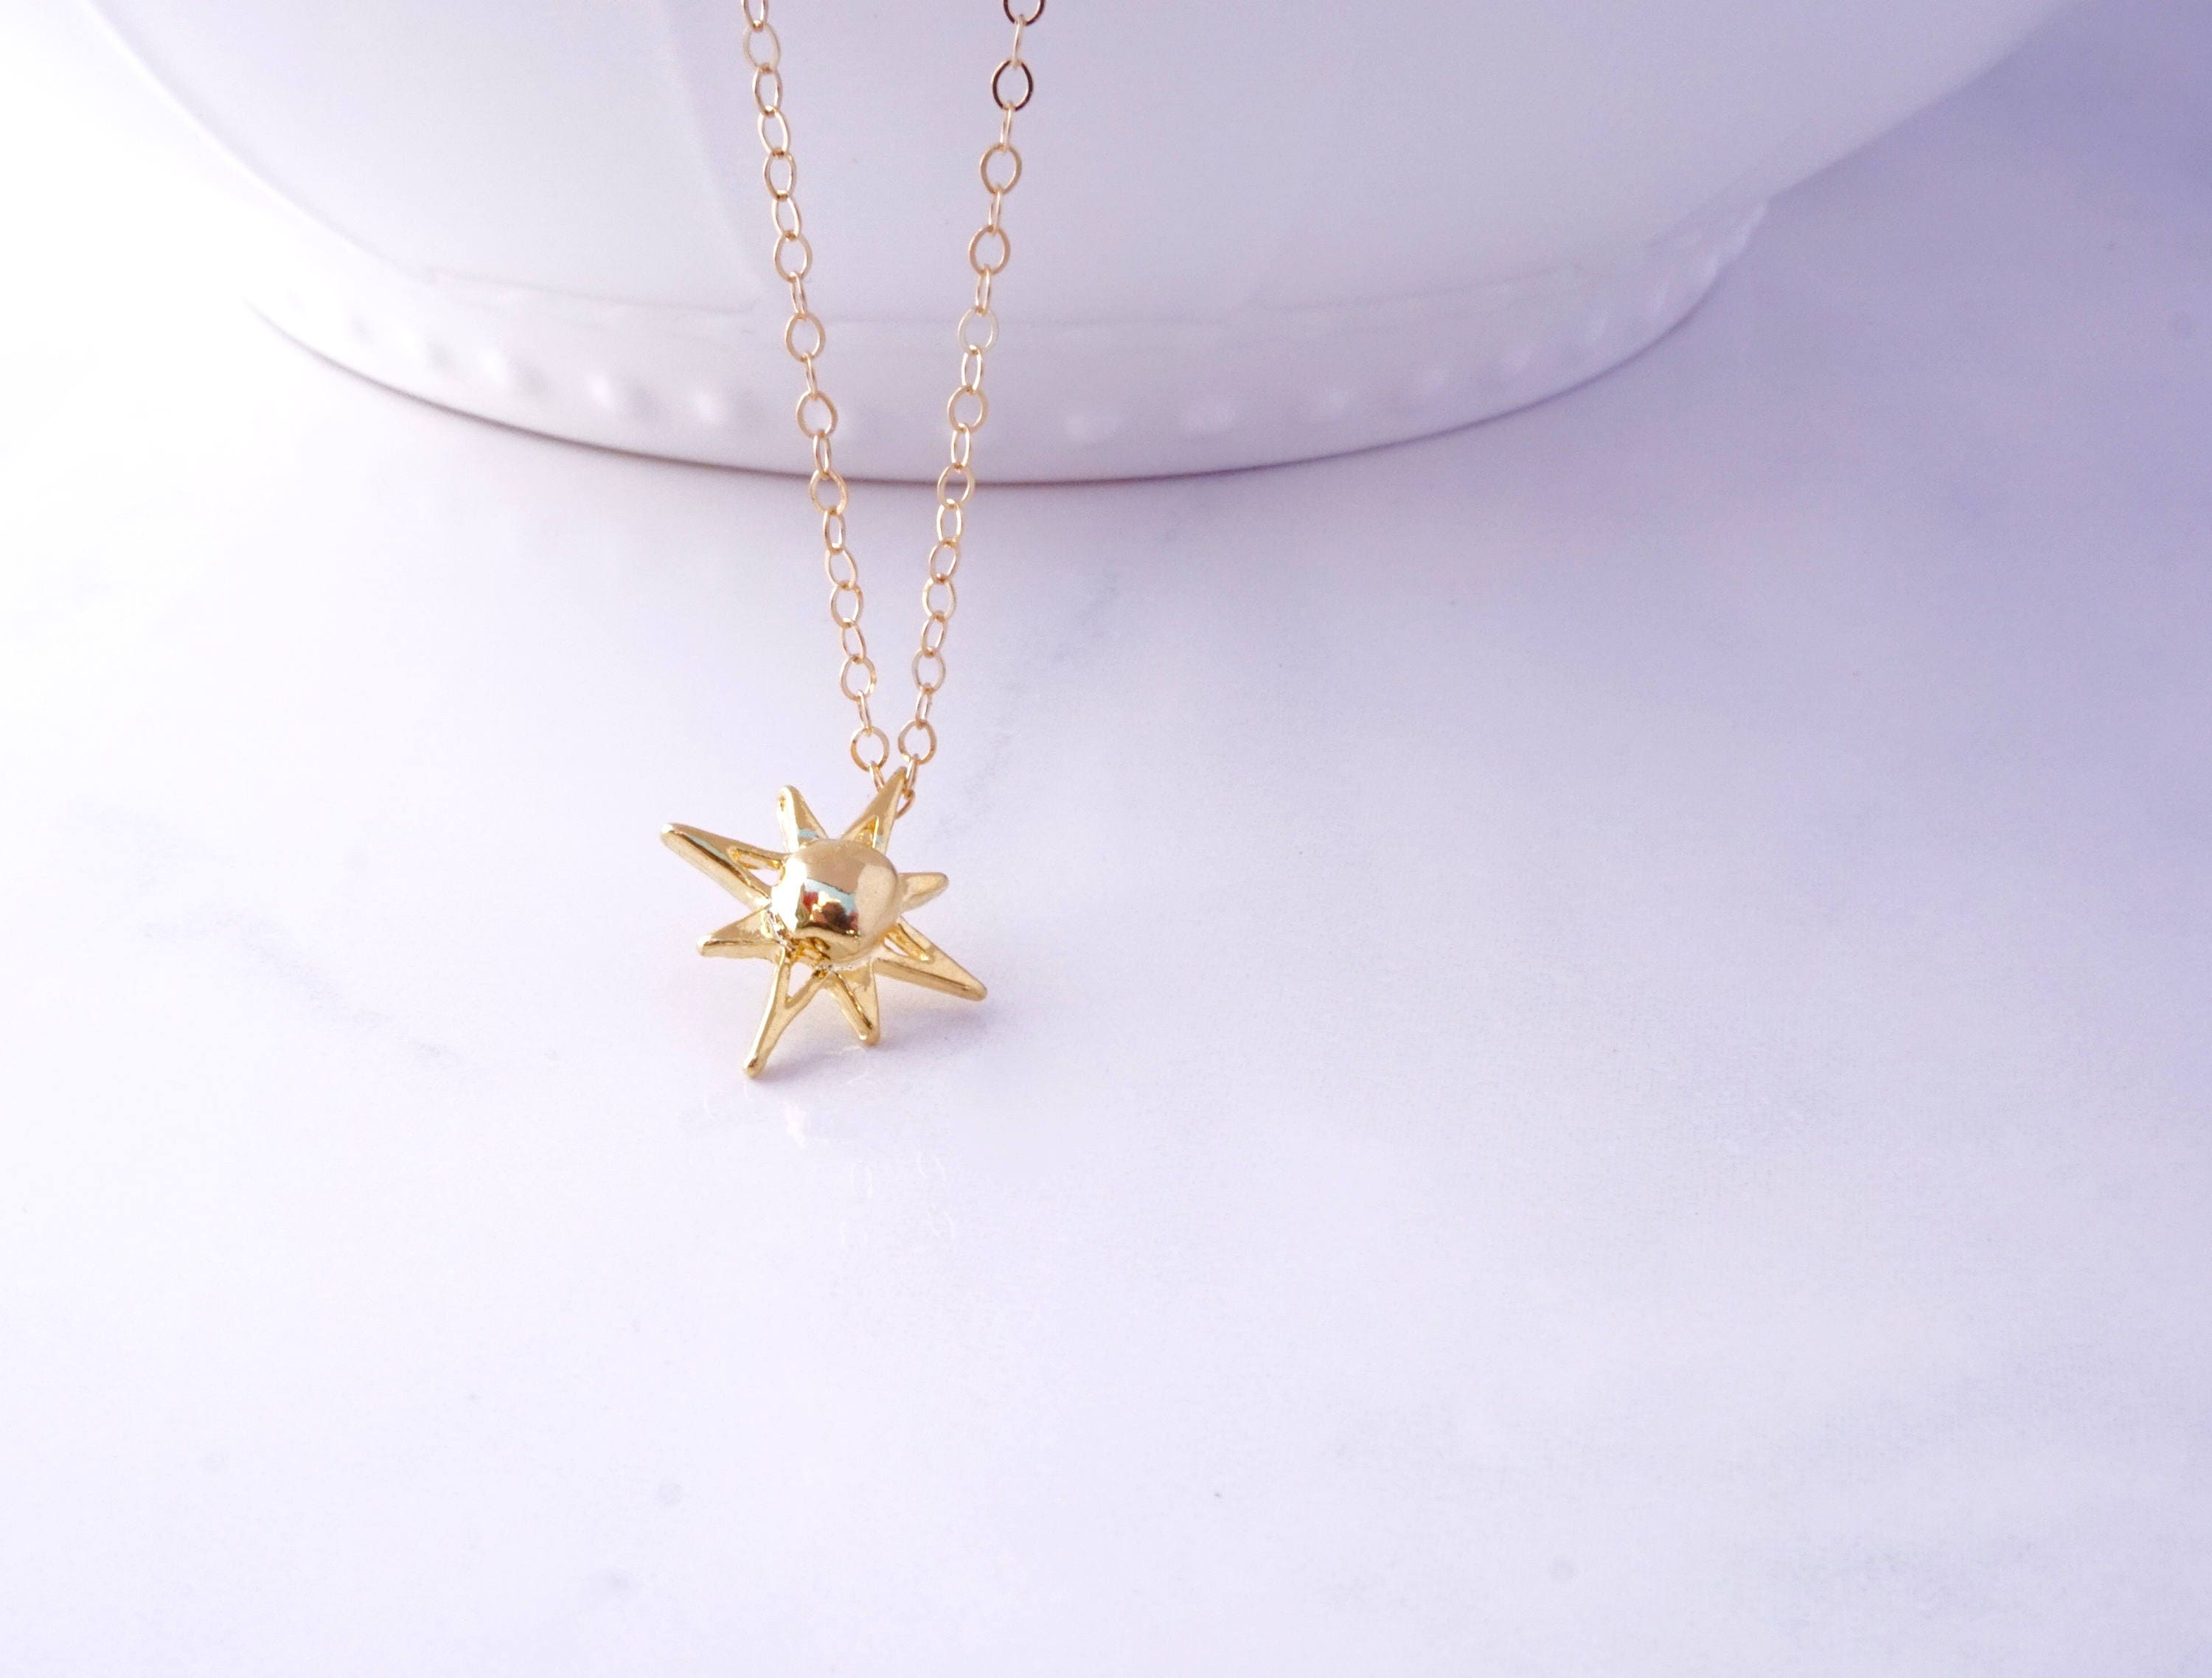 necklace jared to gold star mv yellow jaredstore zoom hover north en teen pendant young jar zm